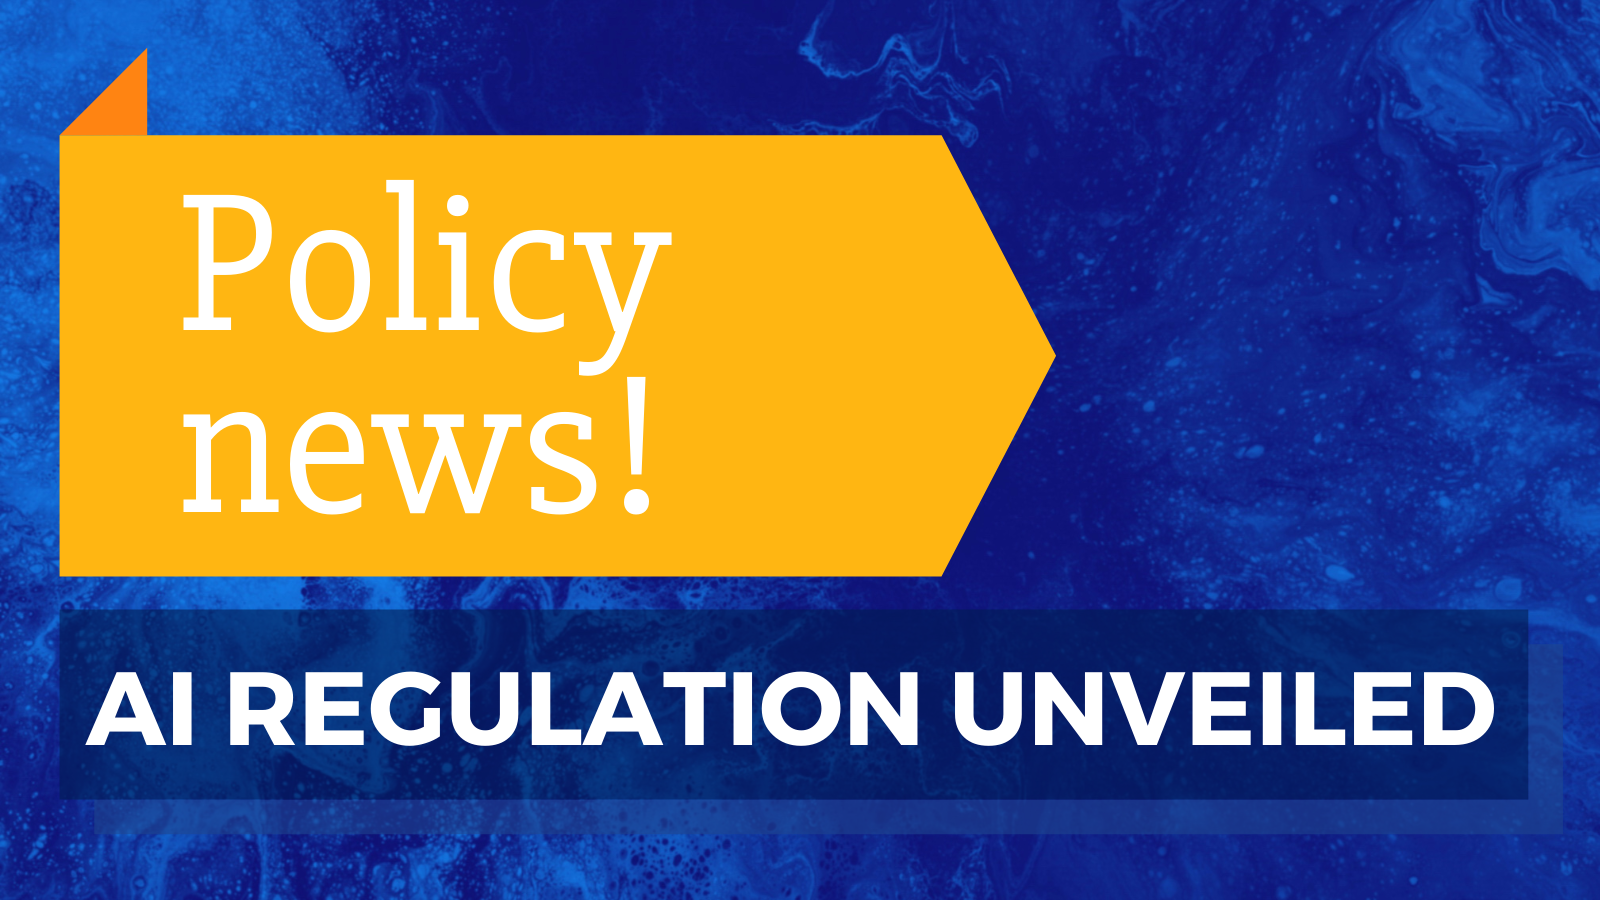 Policy news! AI regulation unveiled